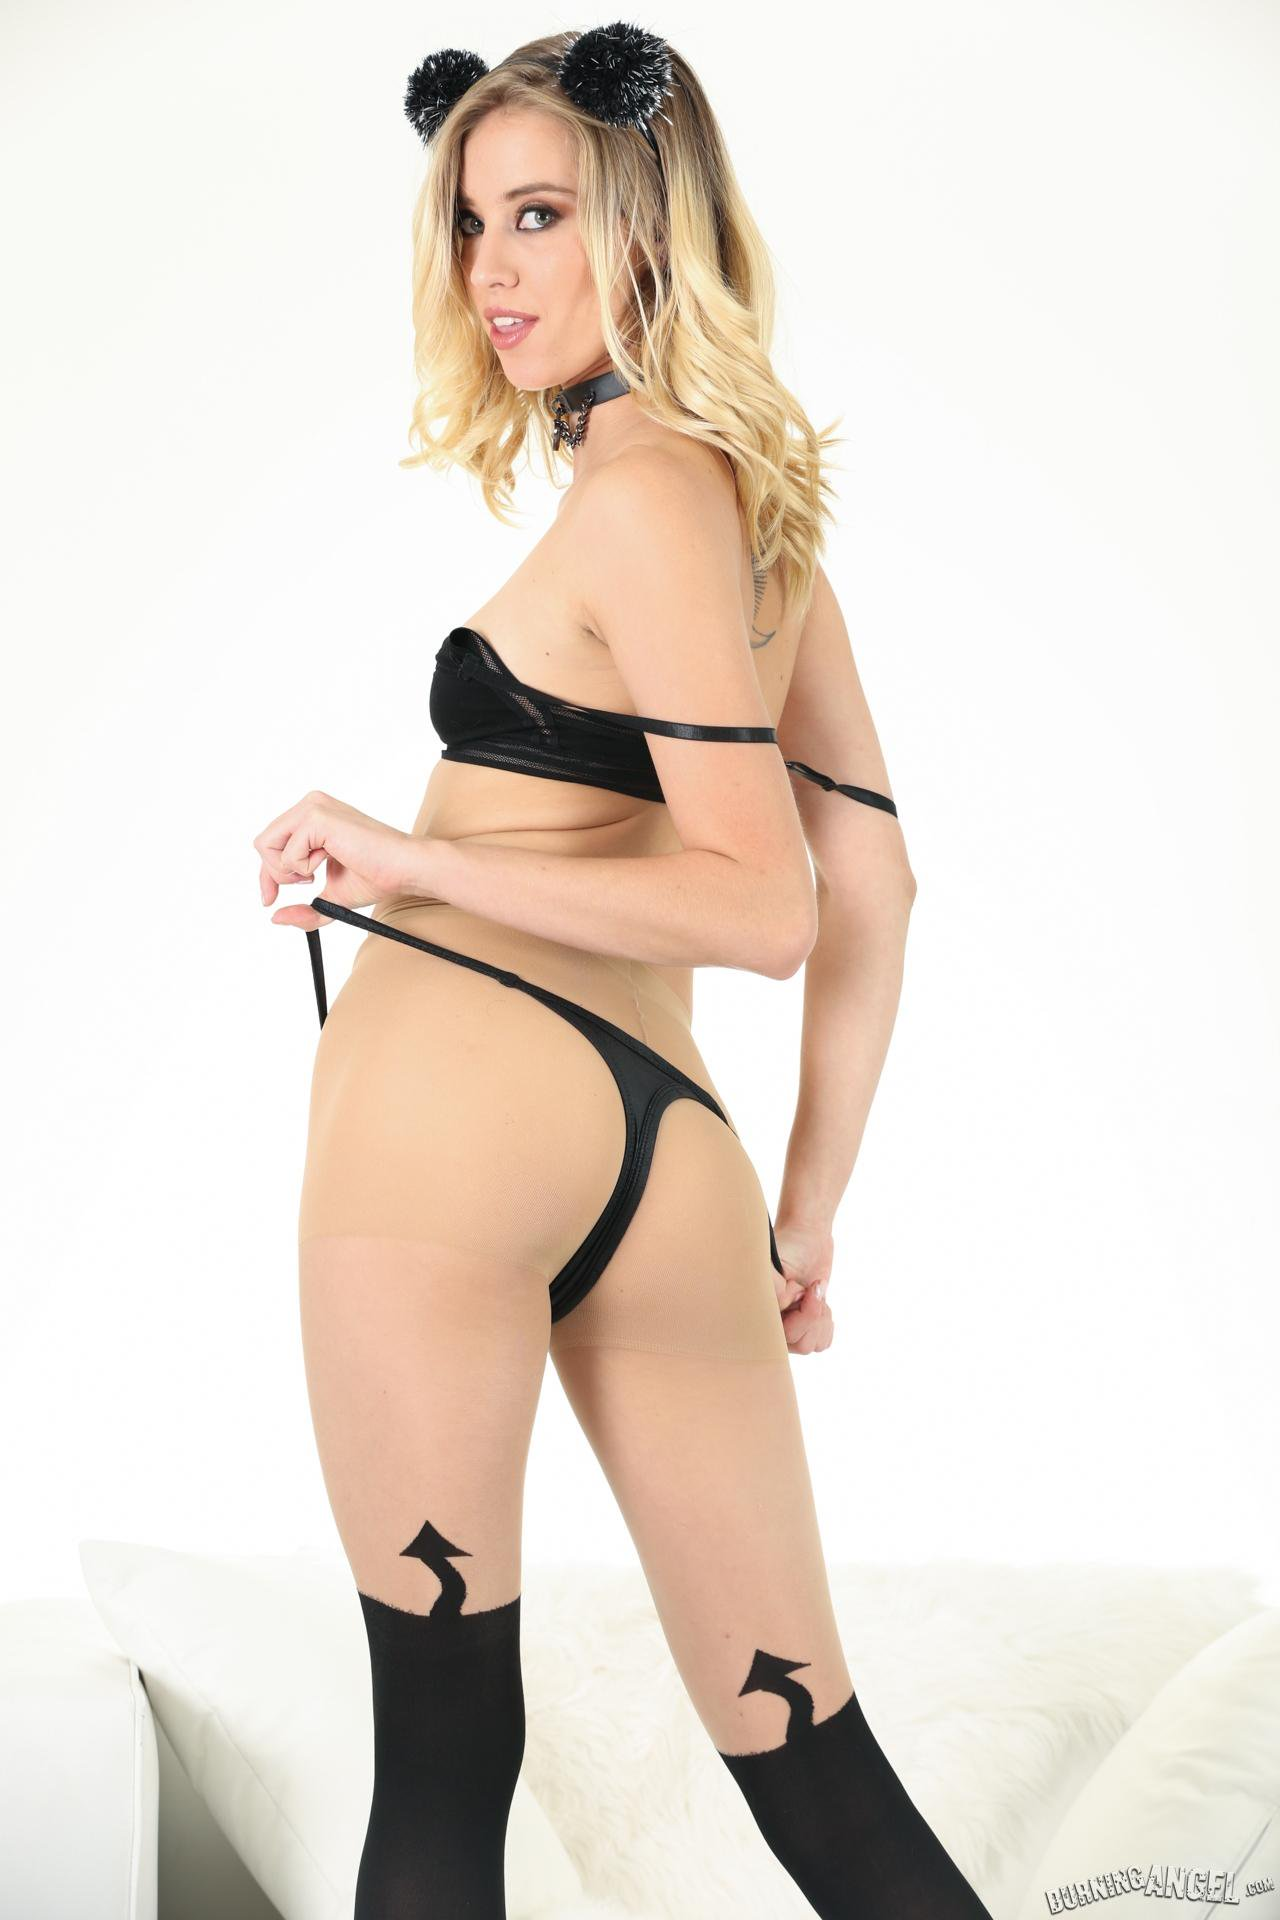 formidable tall blonde with nylon stockings doing a sloppy striptease #1